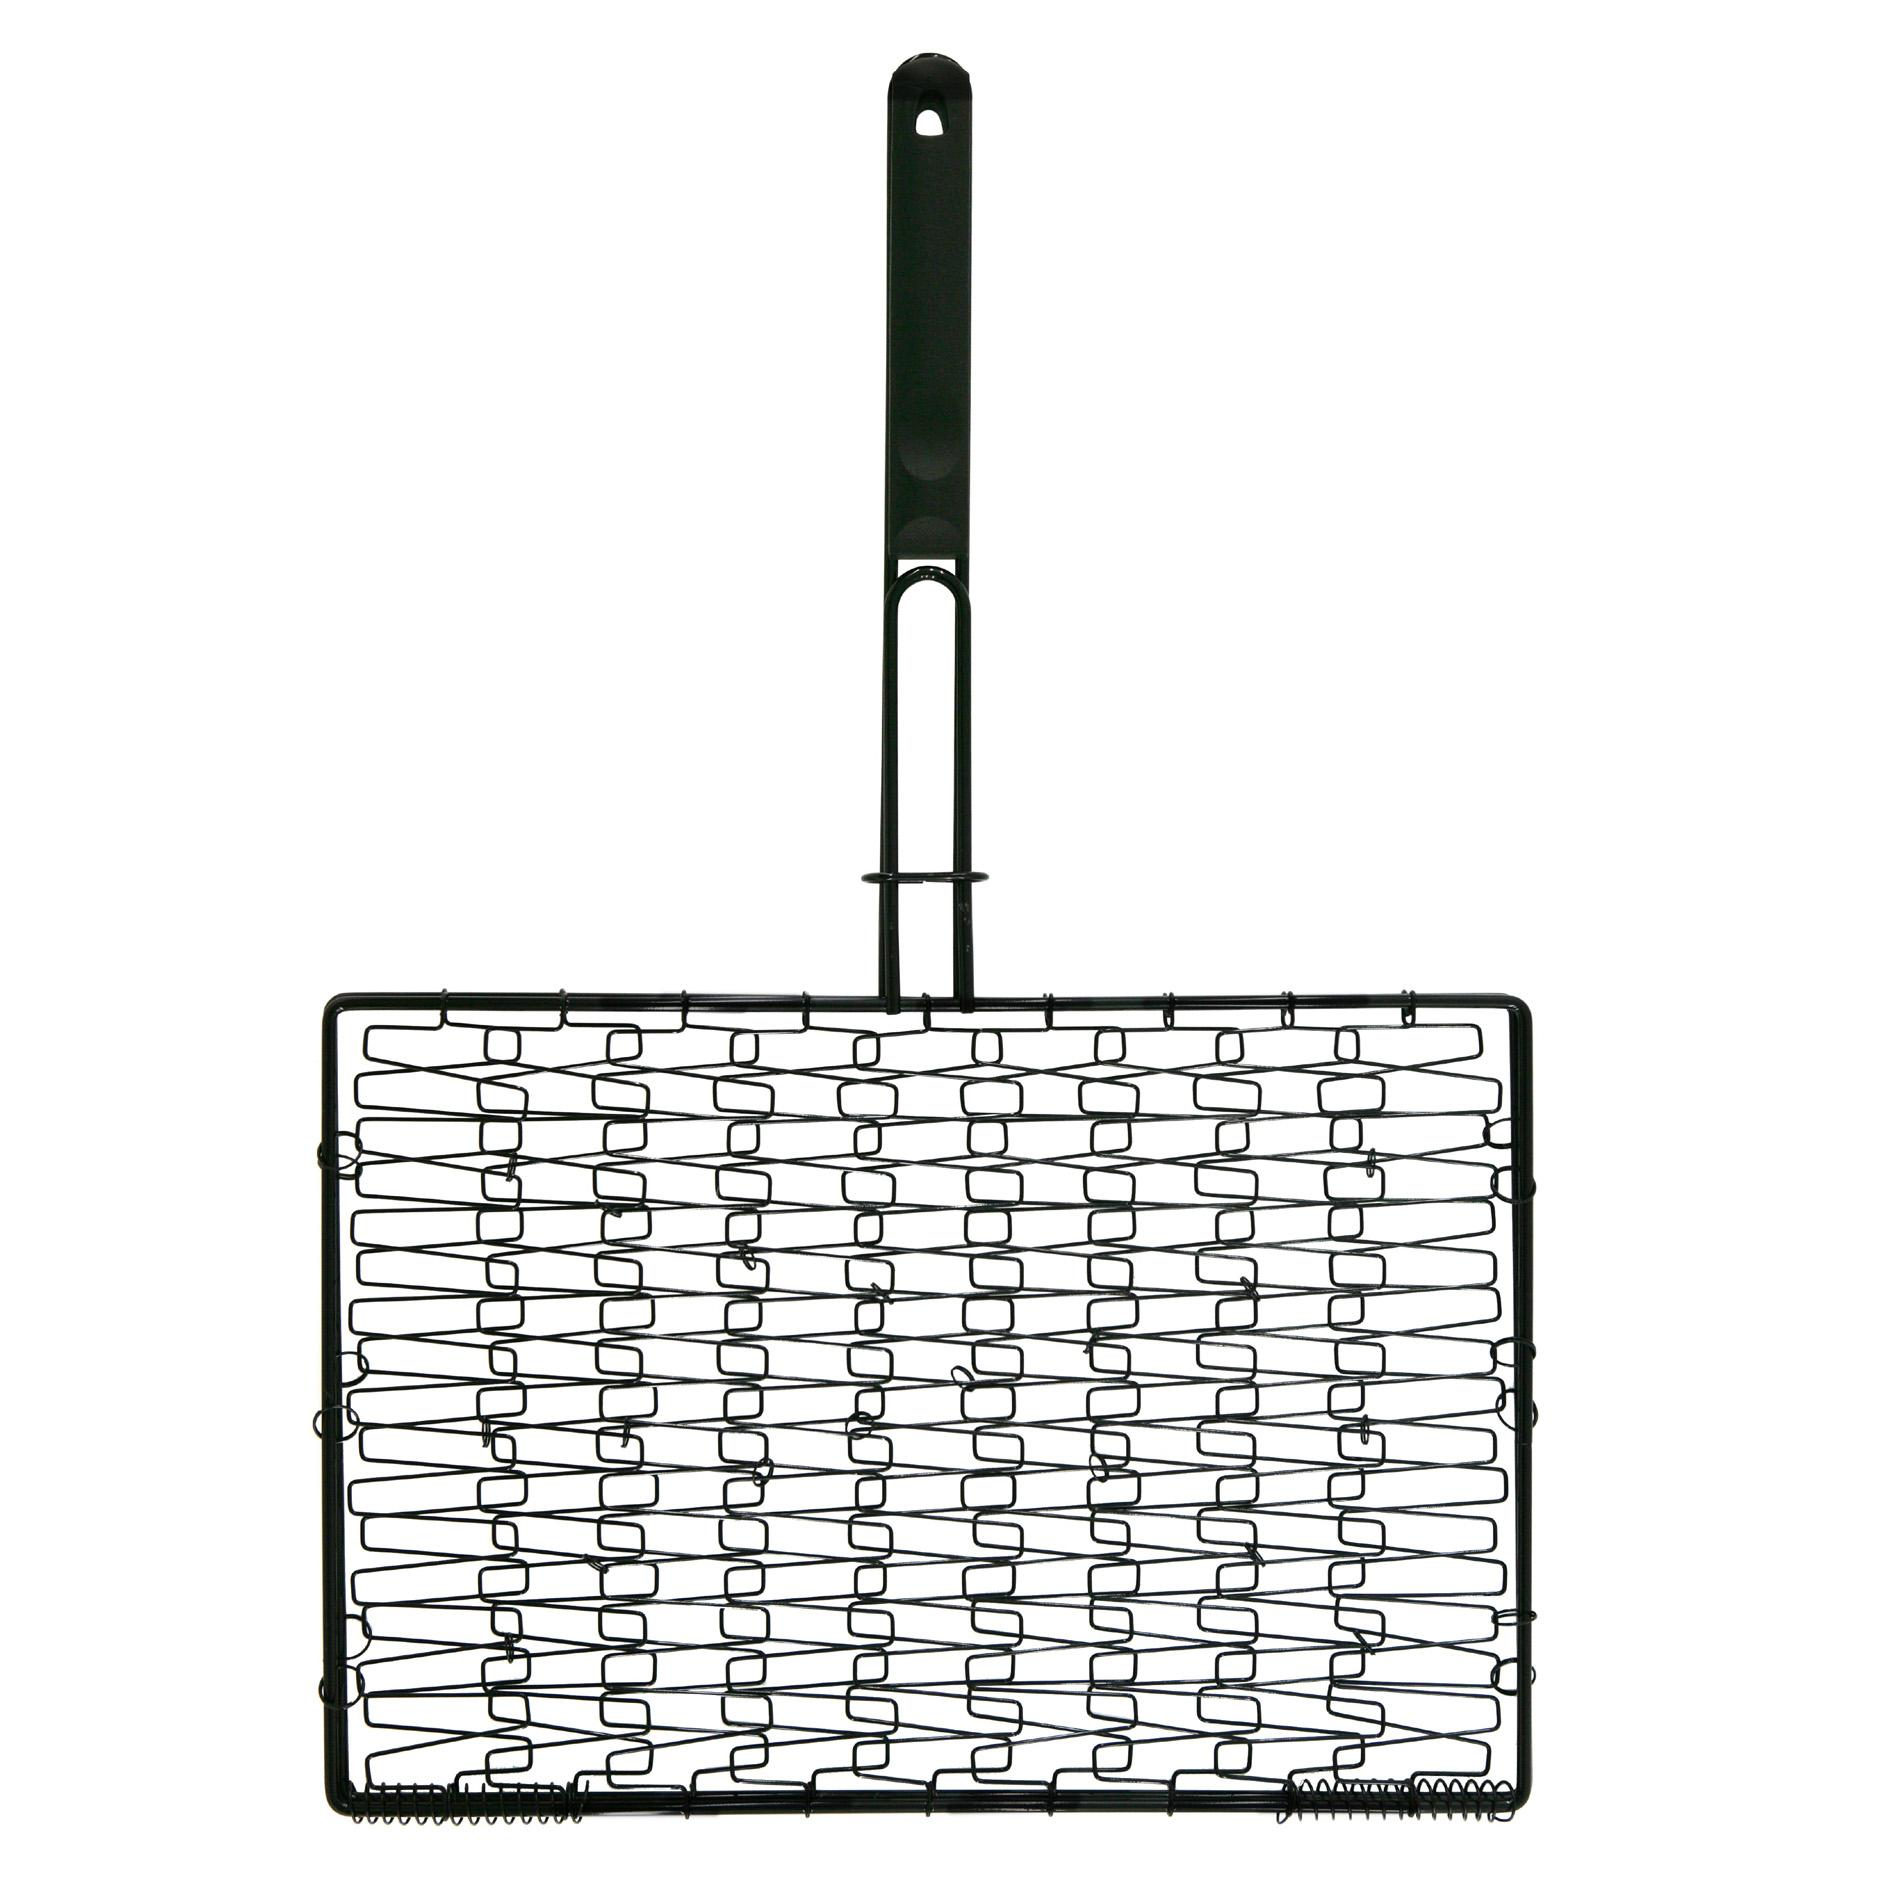 Mr. BBQ Black Deluxe Non-stick Grilling Basket